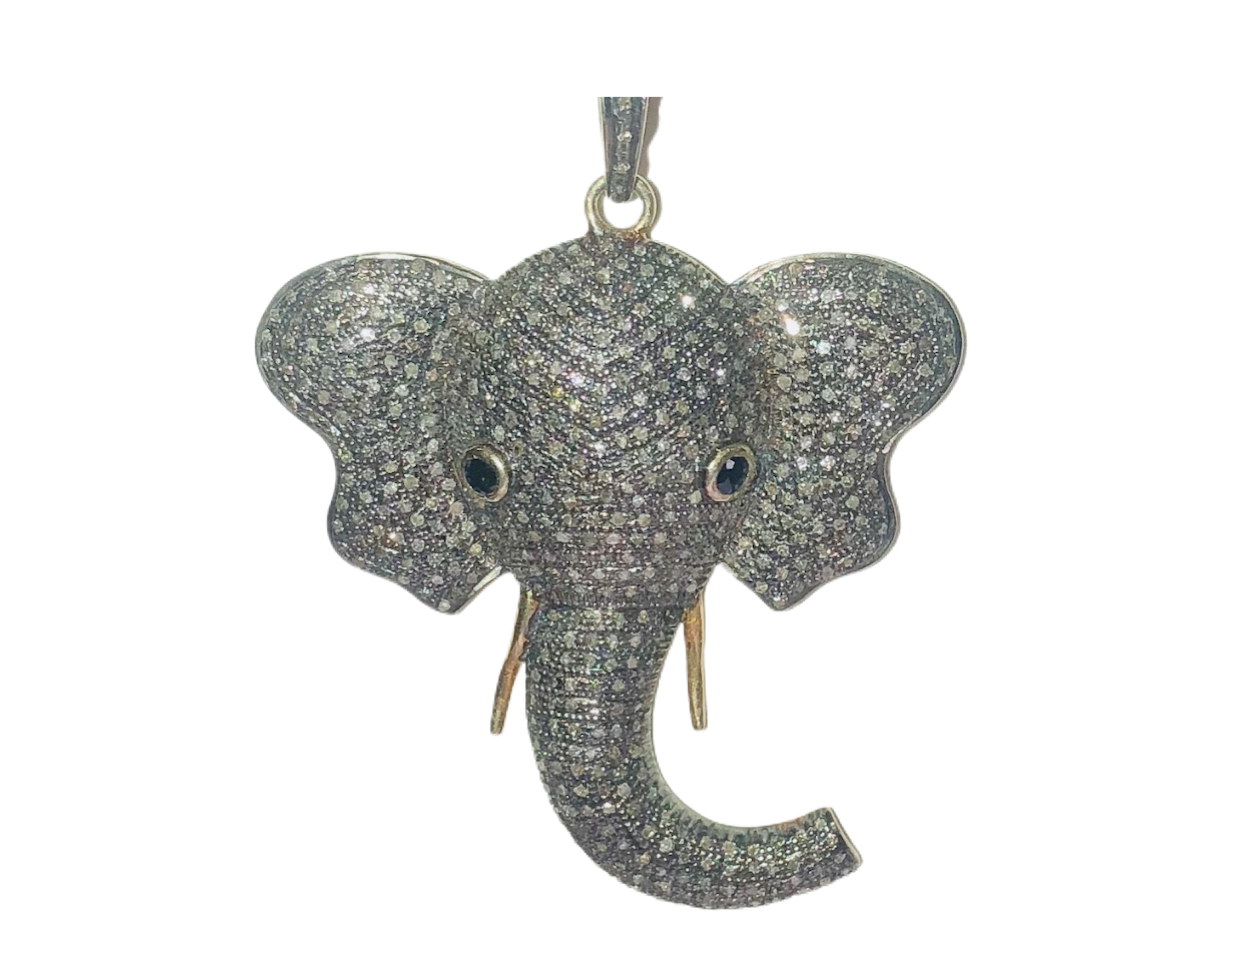 S.Row Designs Diamond Elephant Pendent with Sapphire Eyes